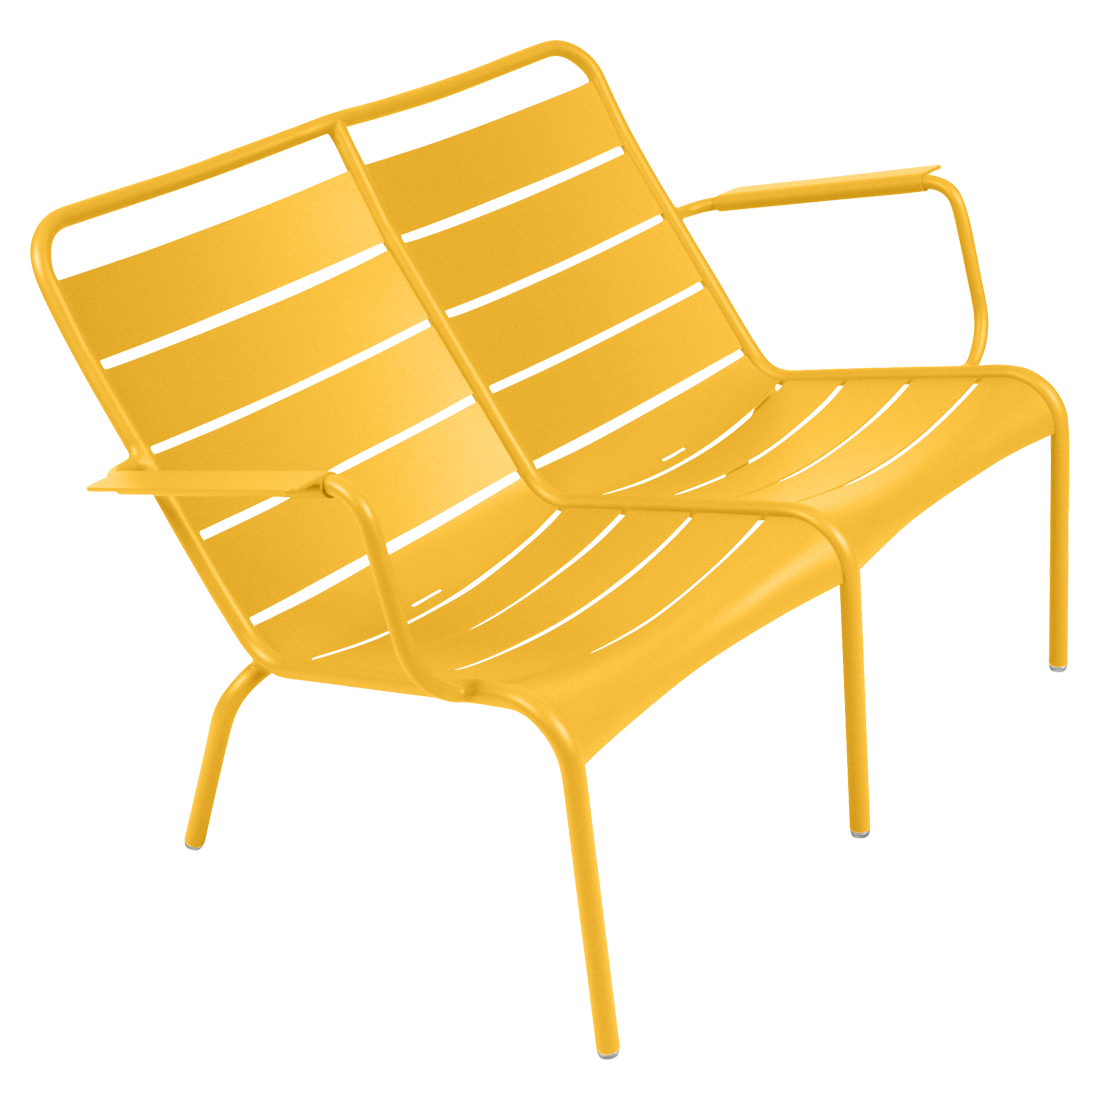 Places Fauteuil Jardin Bas LuxembourgDe Duo 2 EH92DI